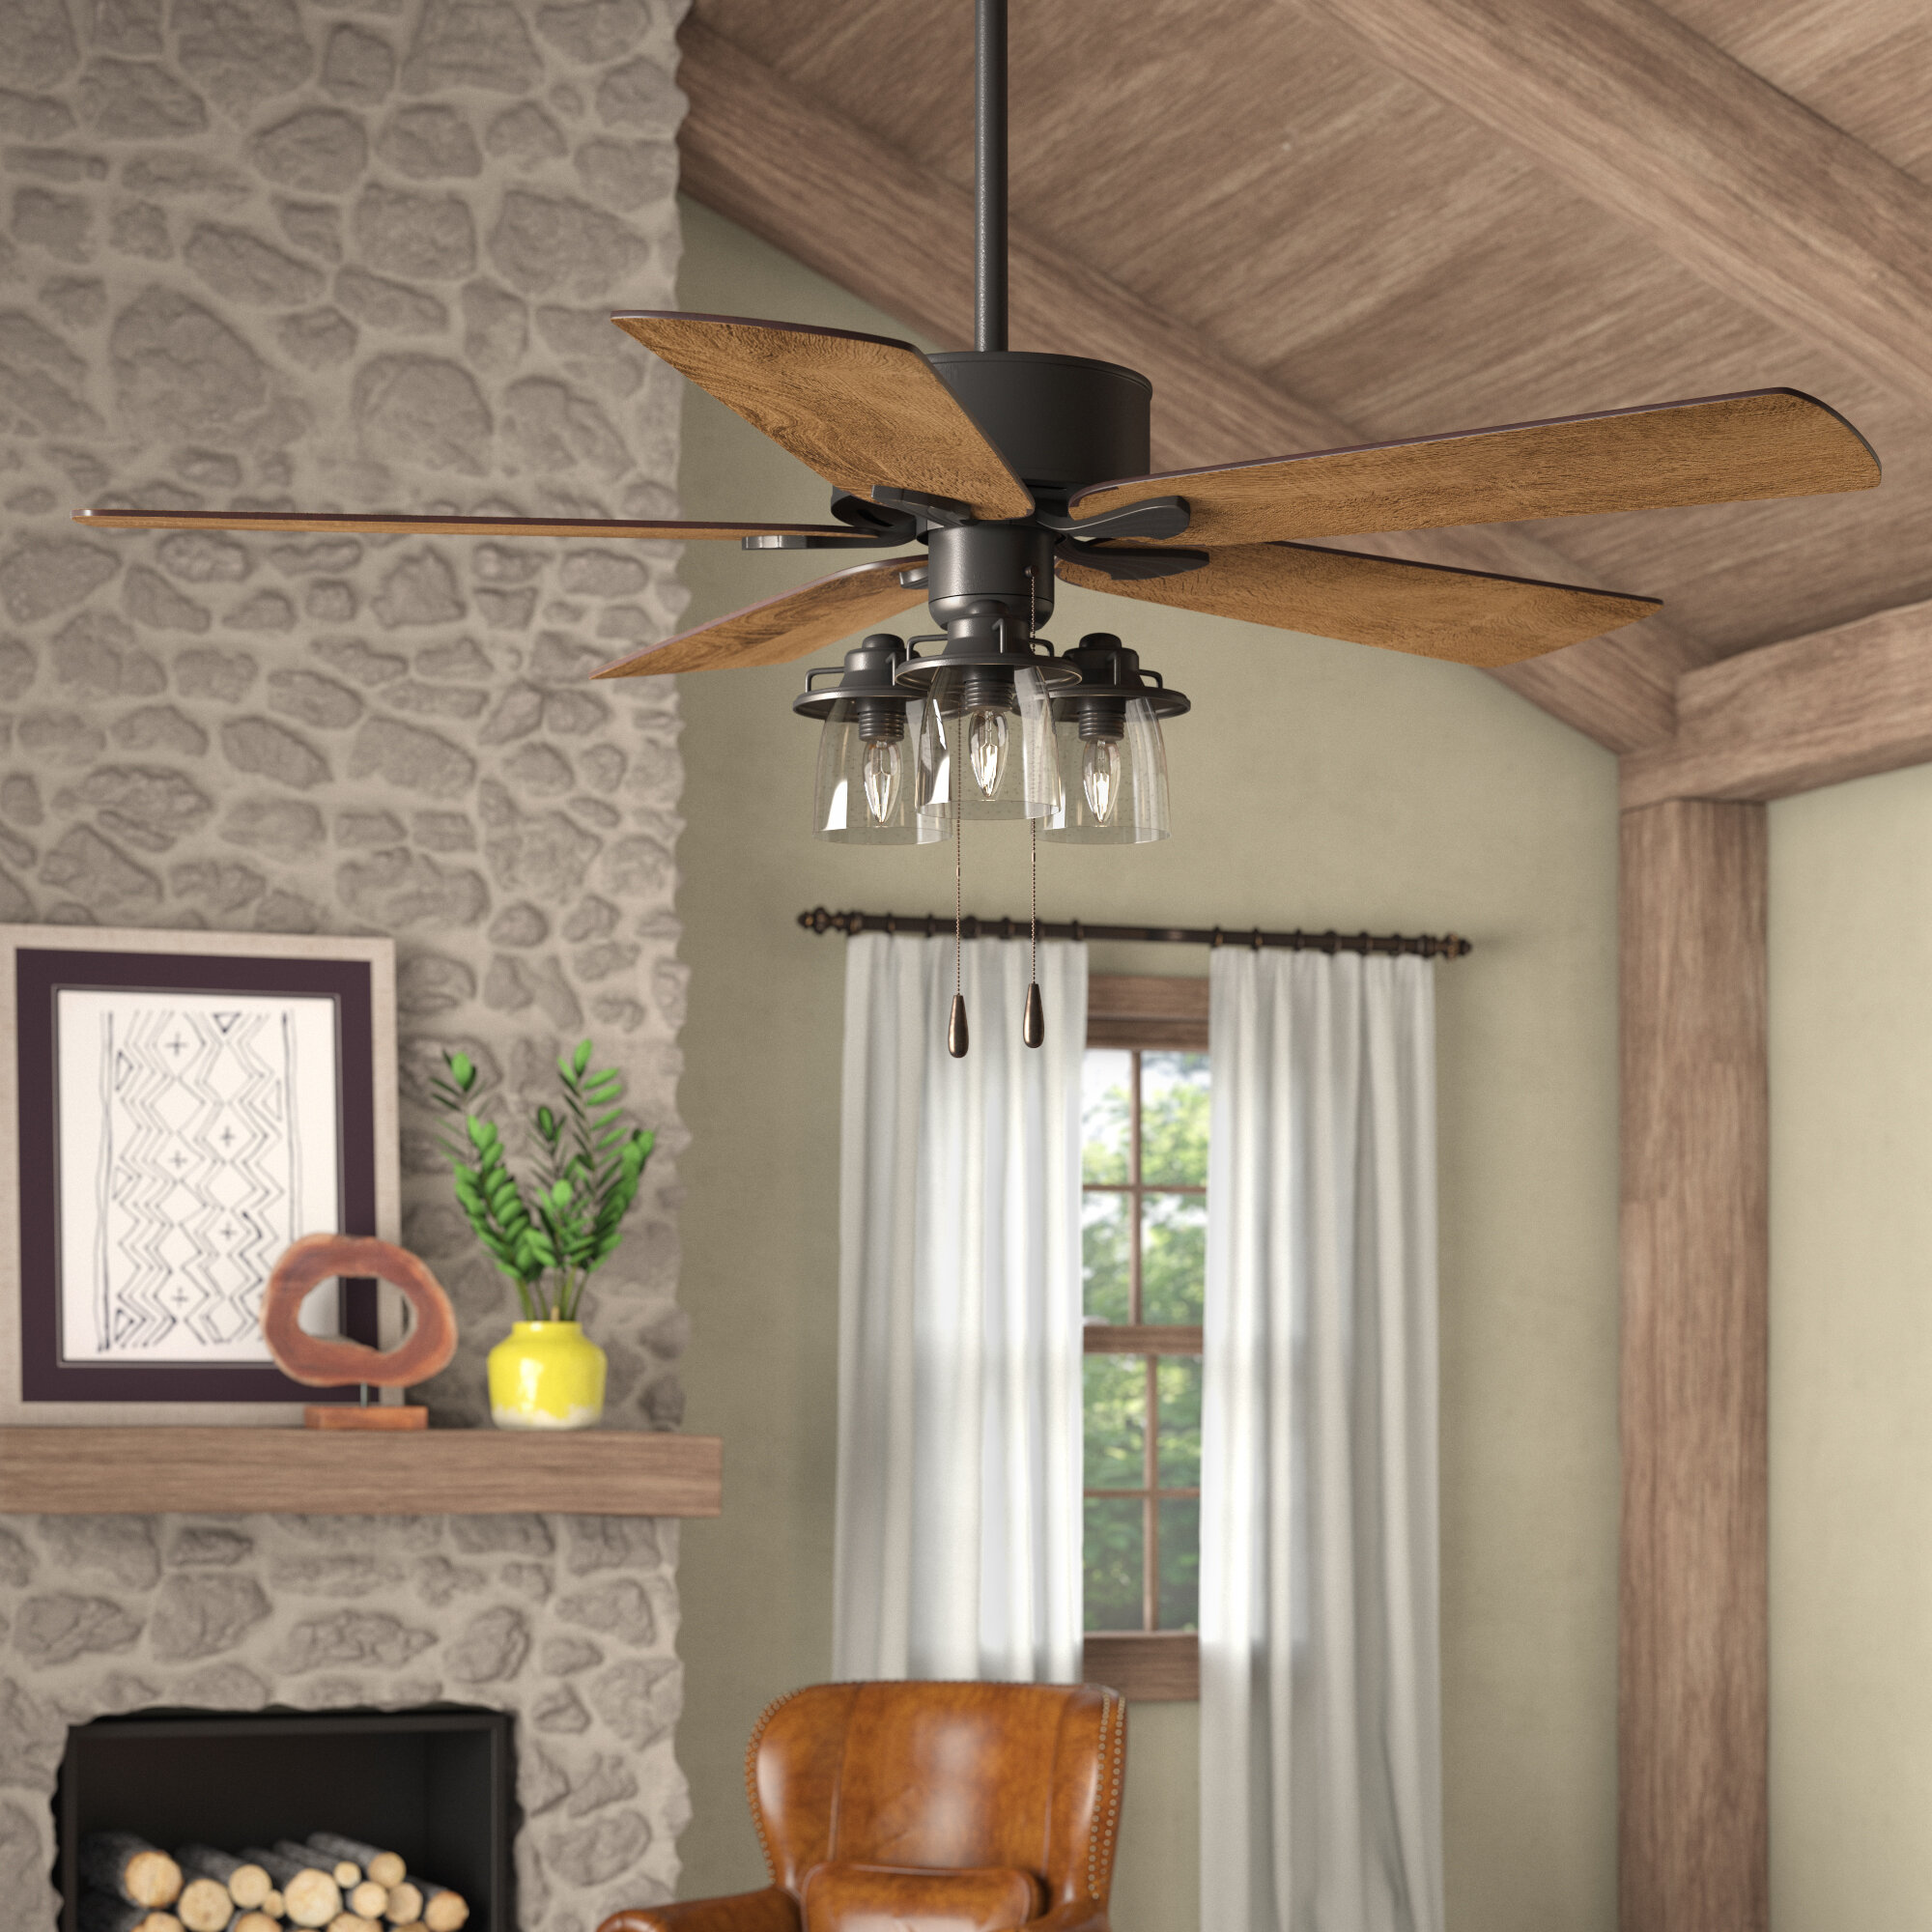 Stop Lighting Your Room With A Ceiling Fan The Bachelor Uncle